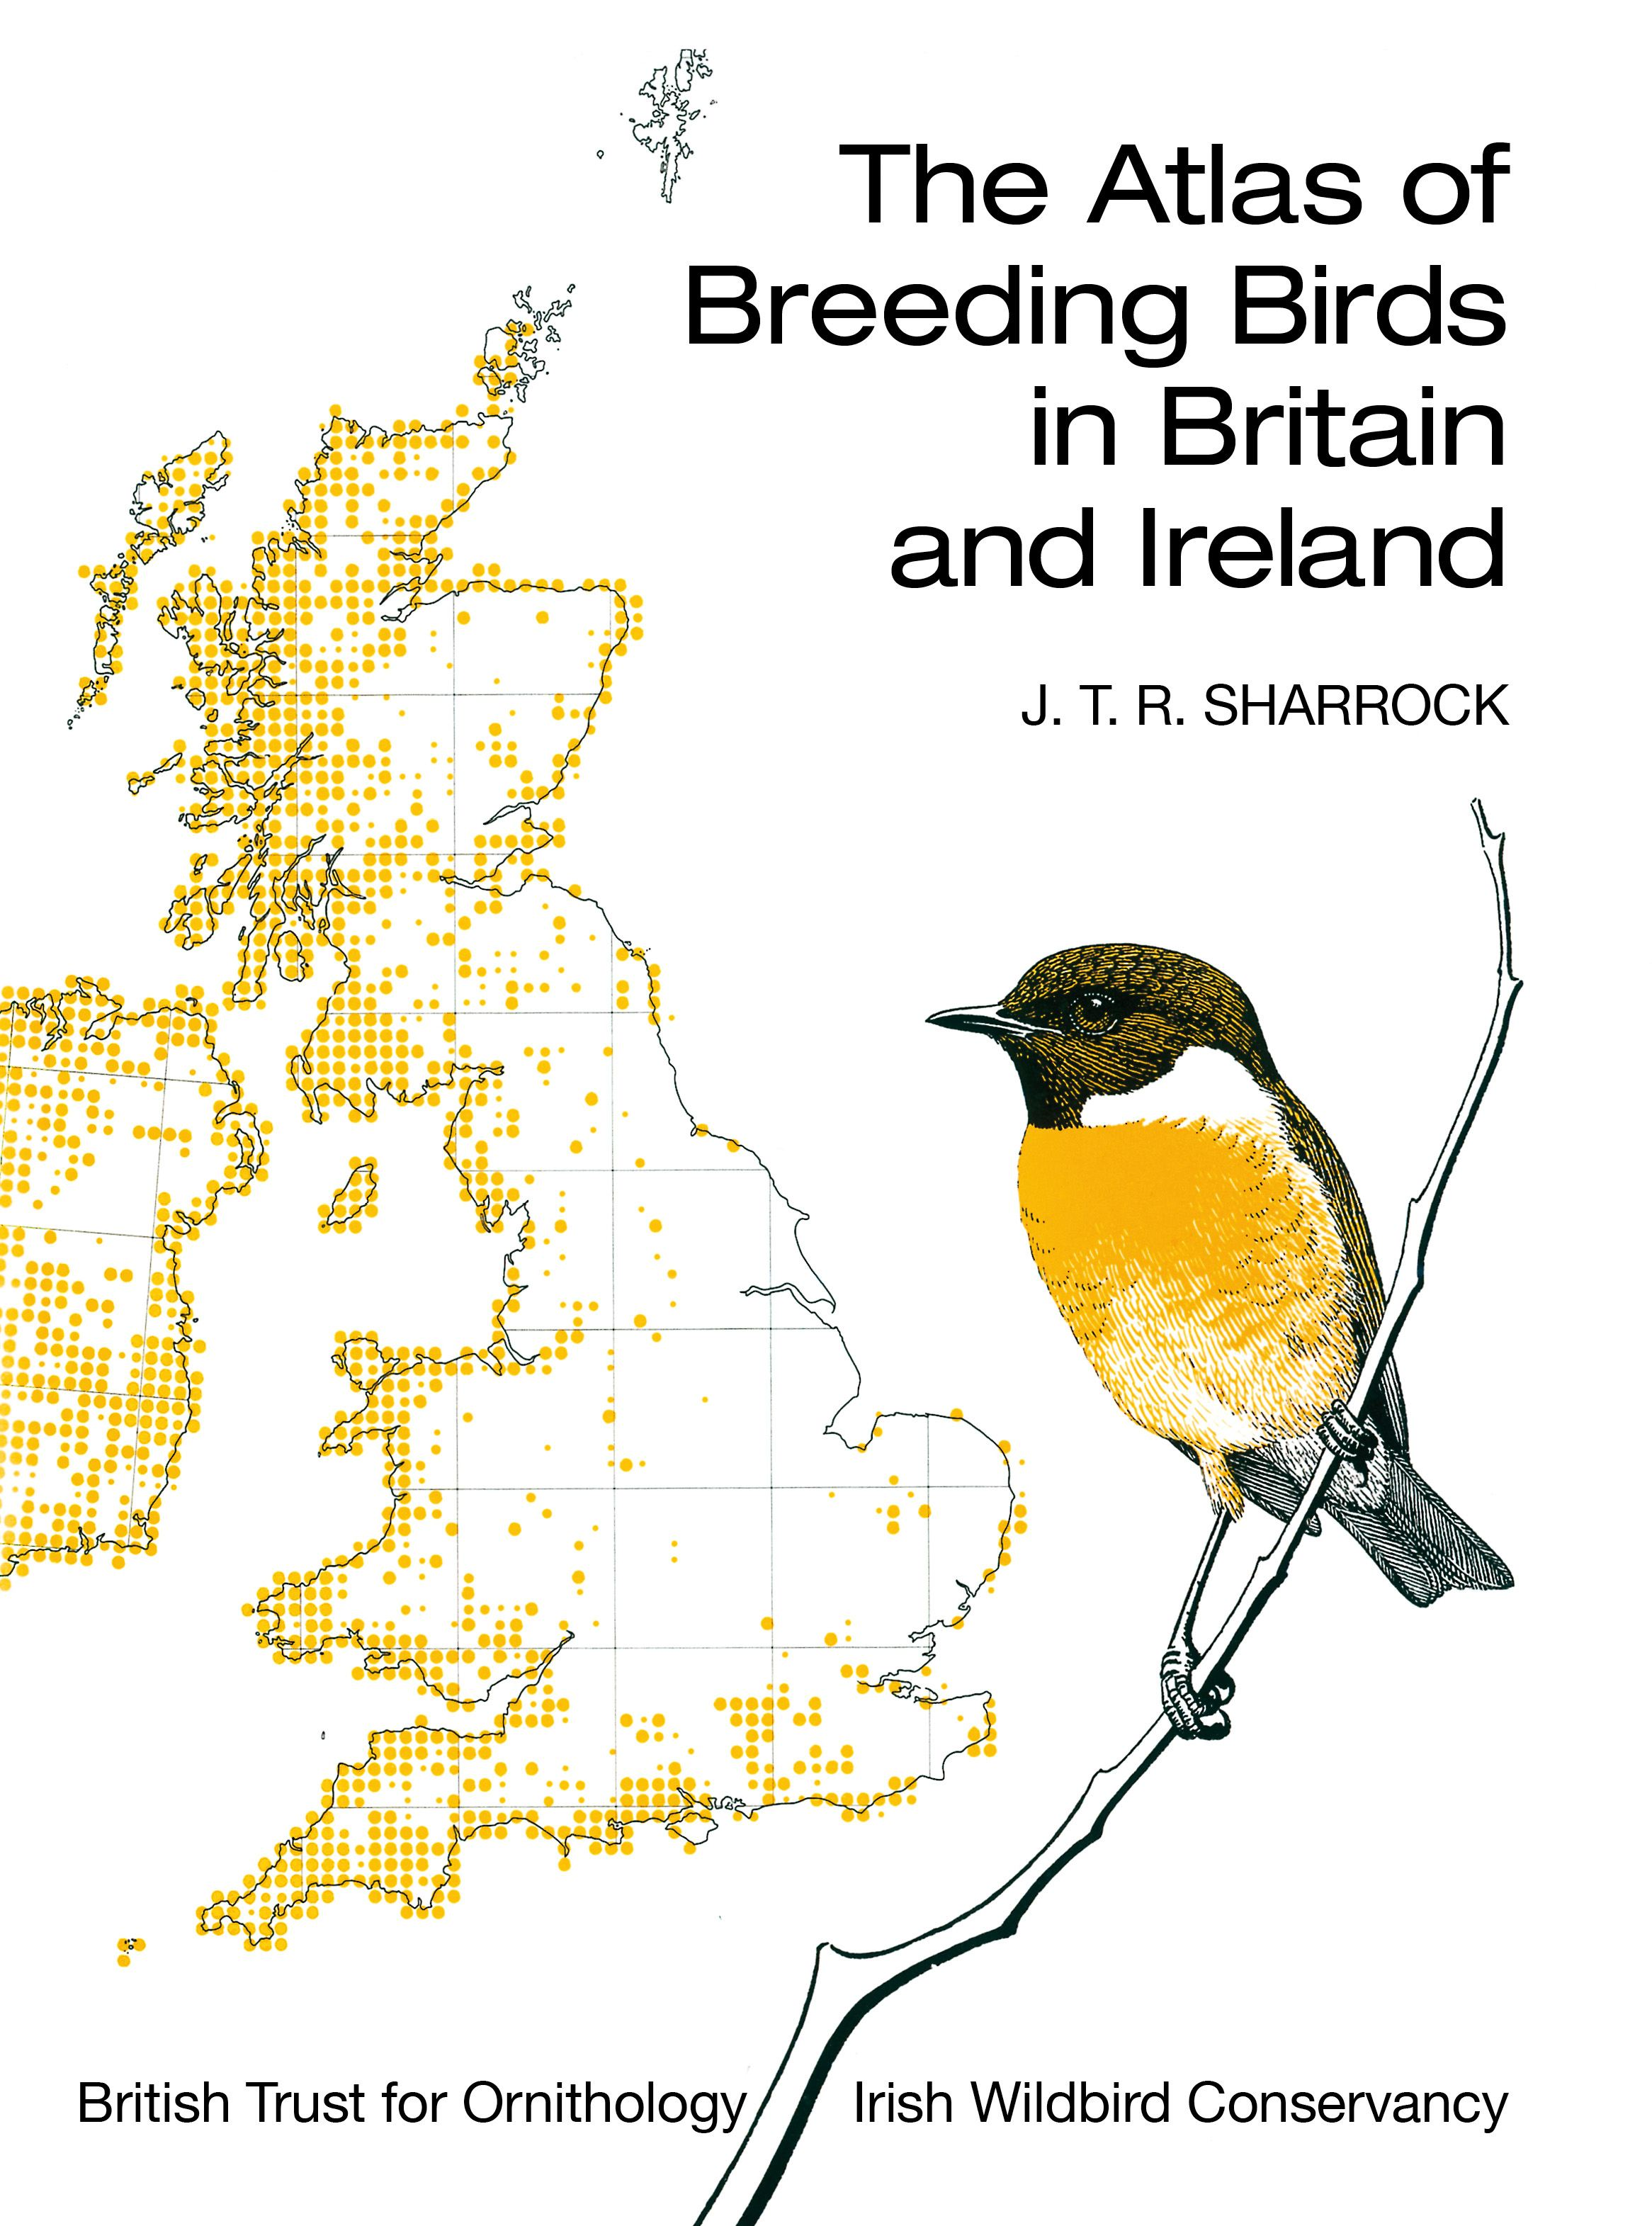 The Atlas of Breeding Birds in Britain and Ireland